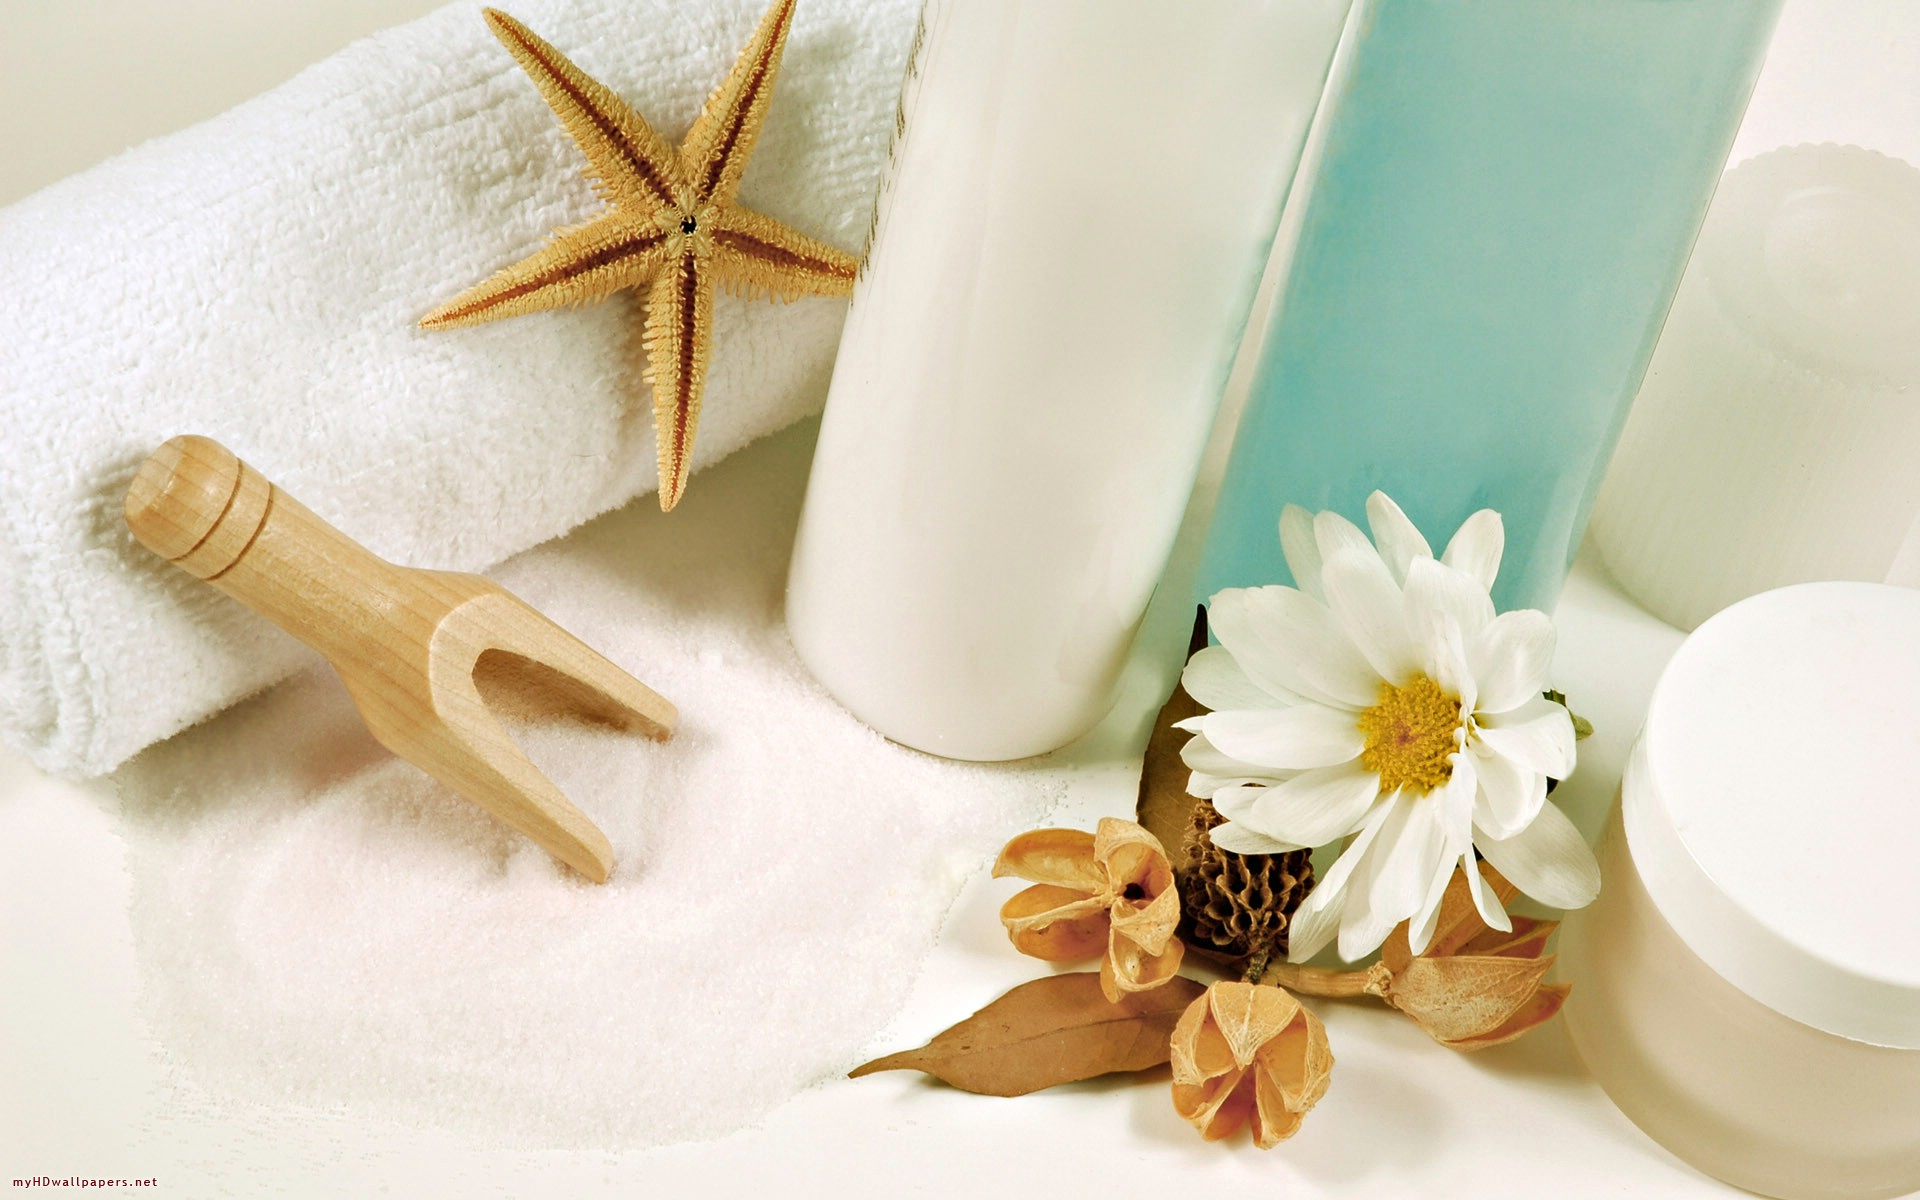 spa treatment wallpaper - photo #10